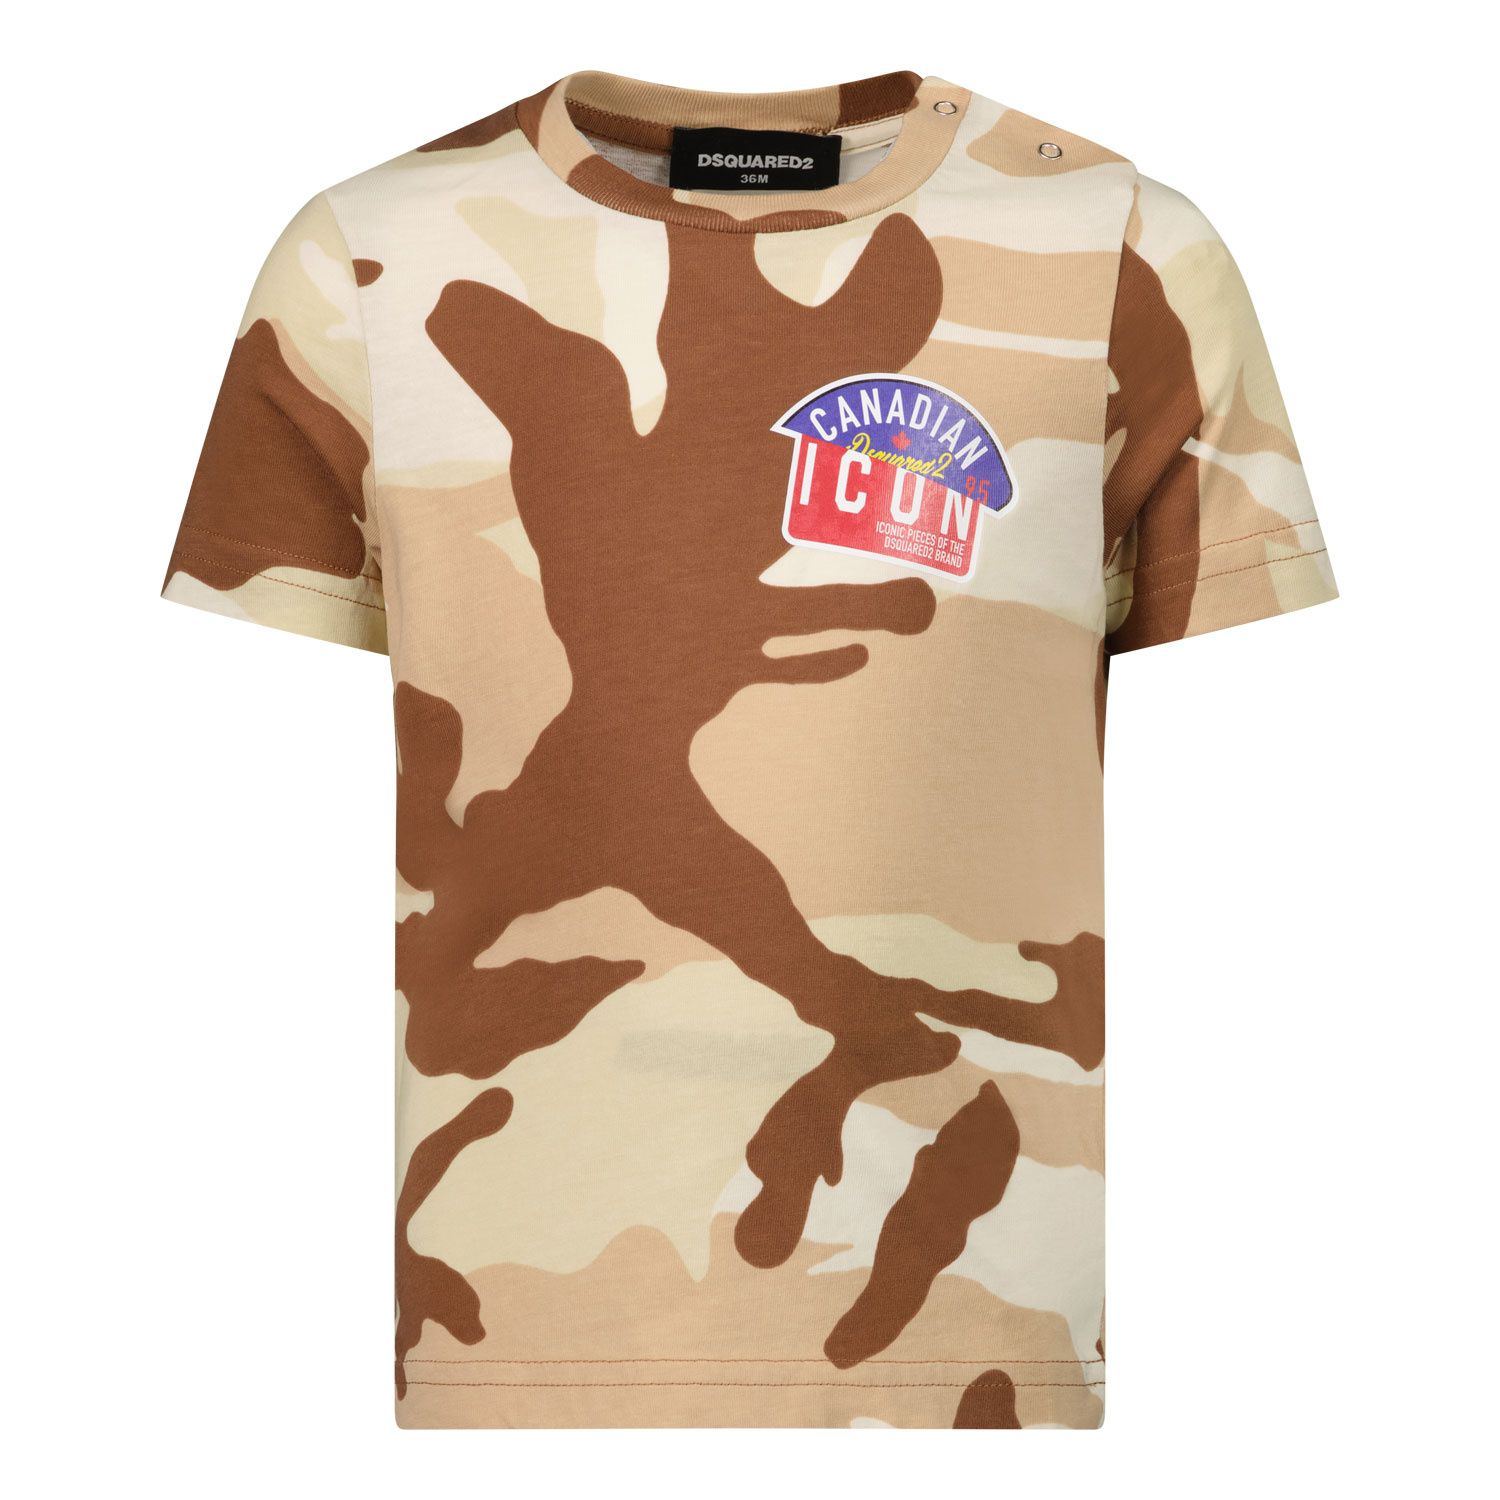 Picture of Dsquared2 DQ0254 baby shirt army